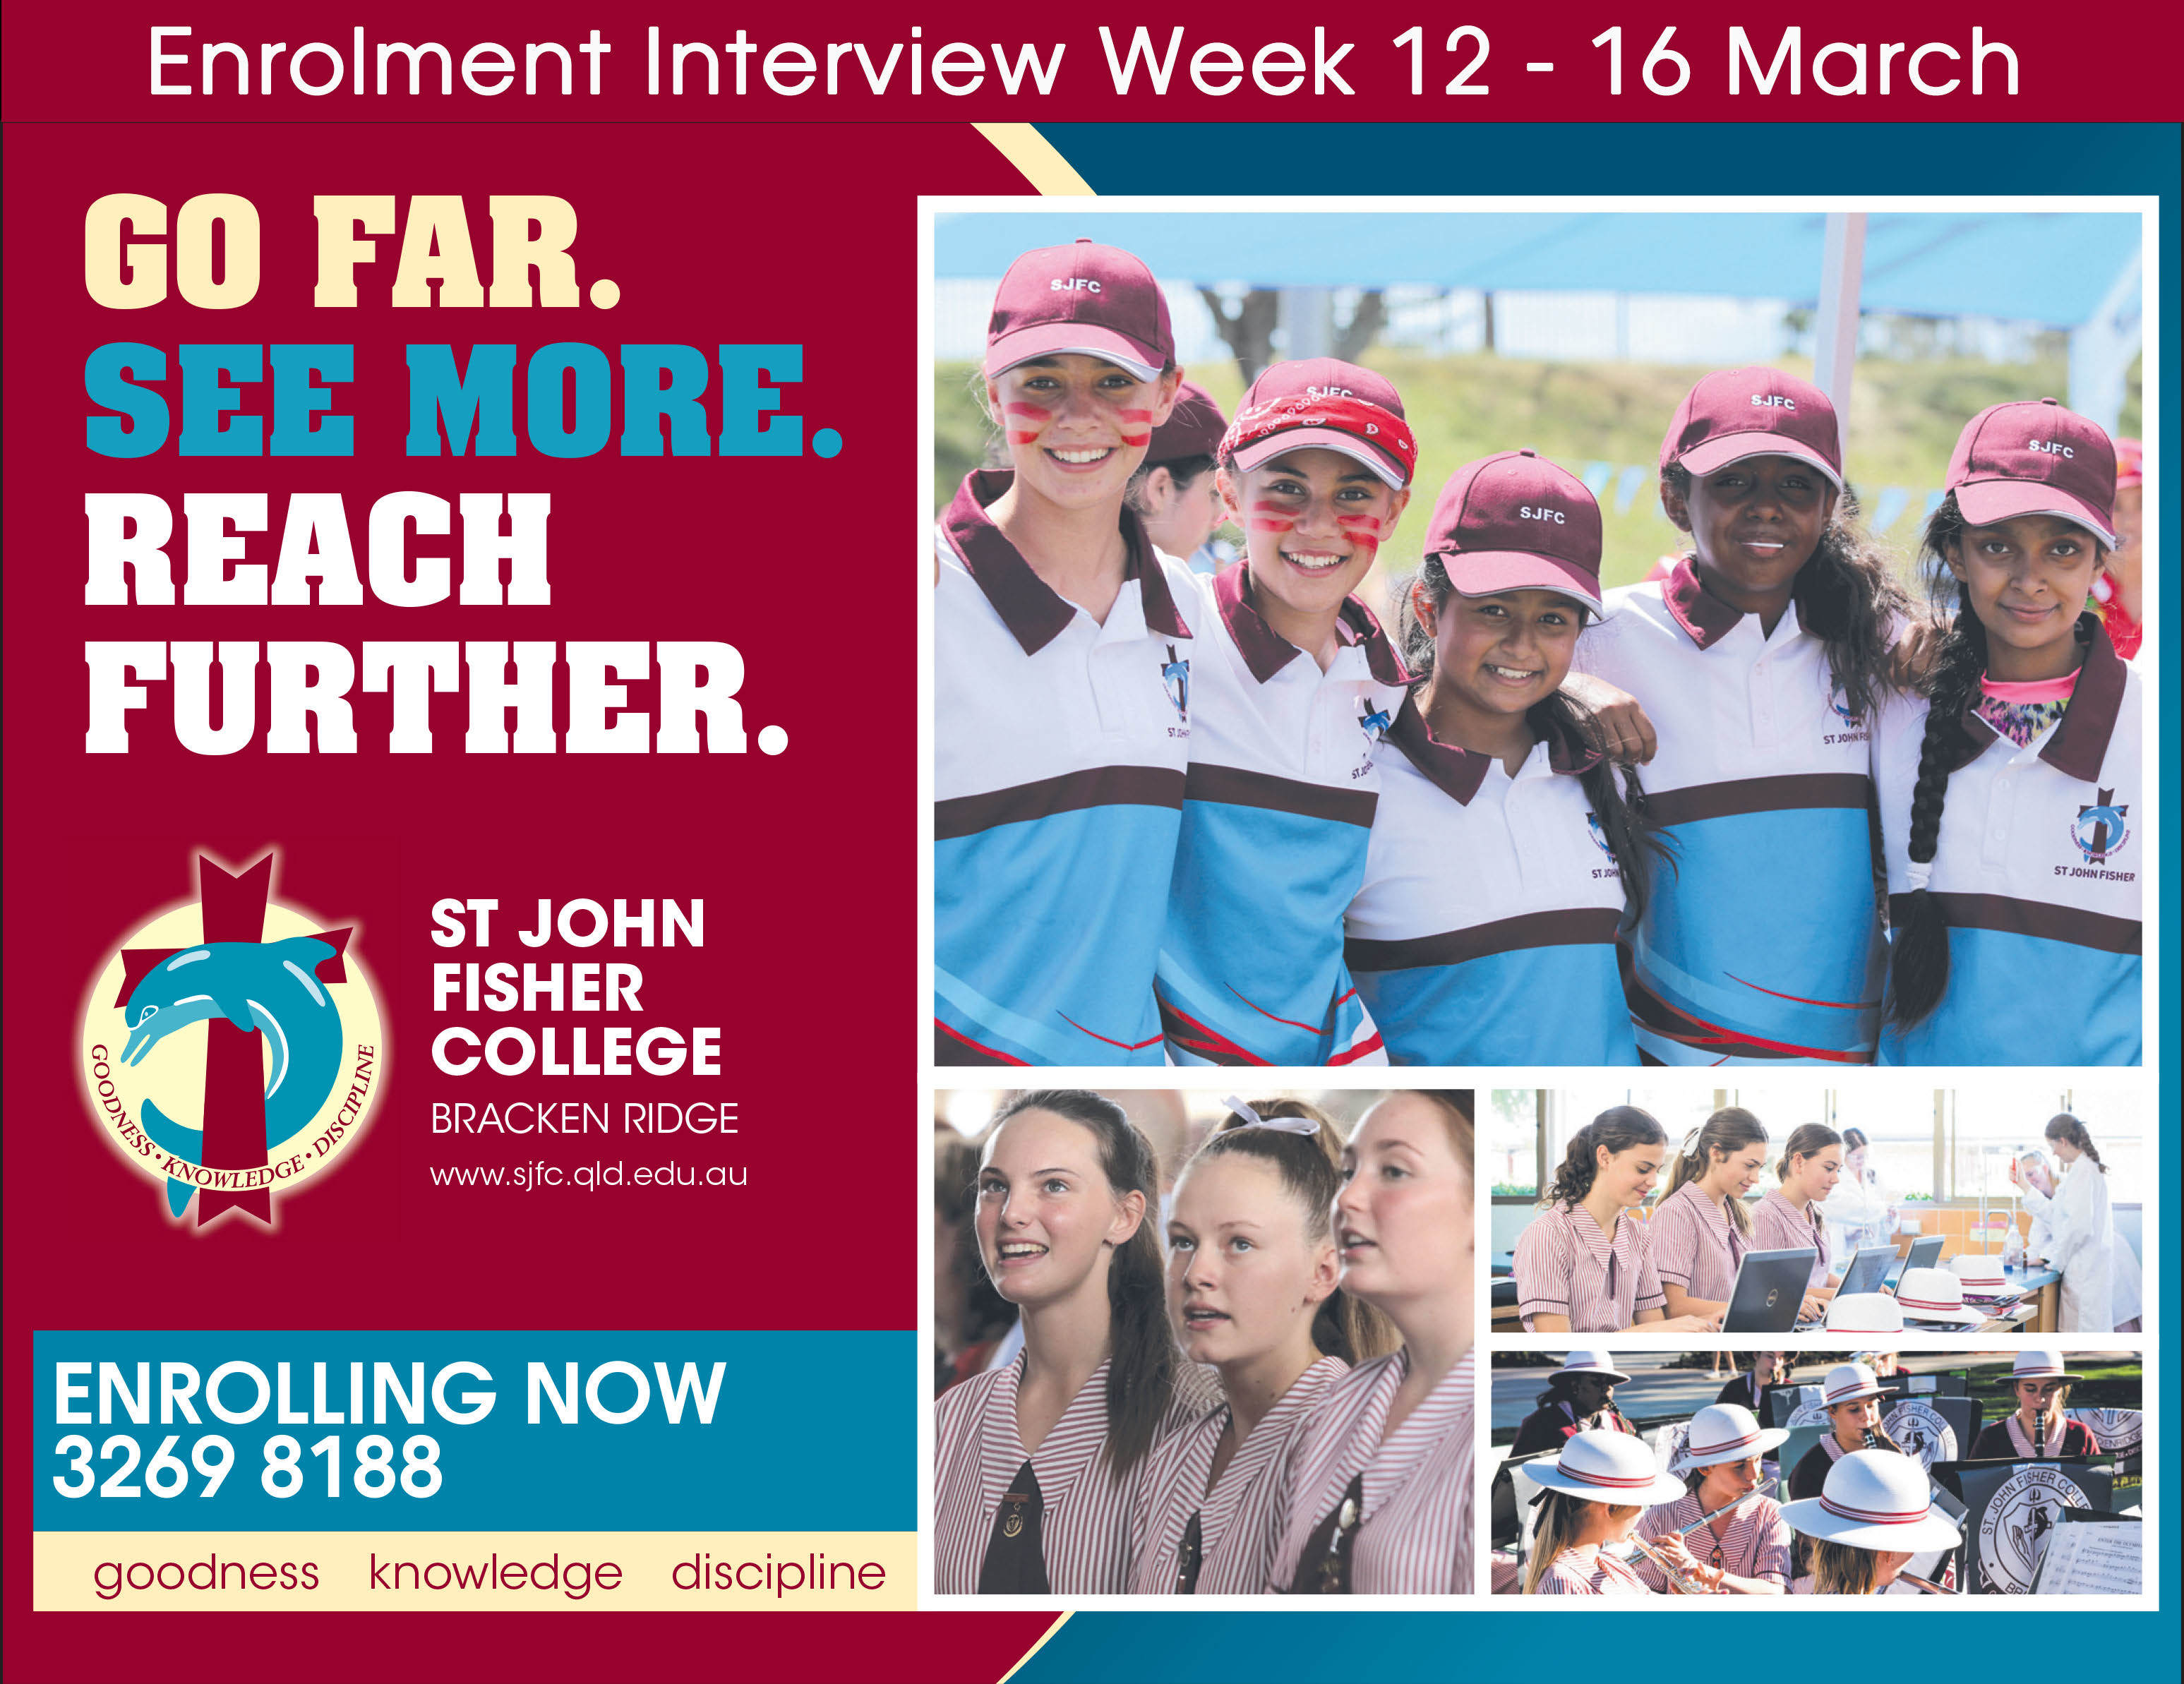 St-John-Fisher-College-Enrolling-Now.jpg